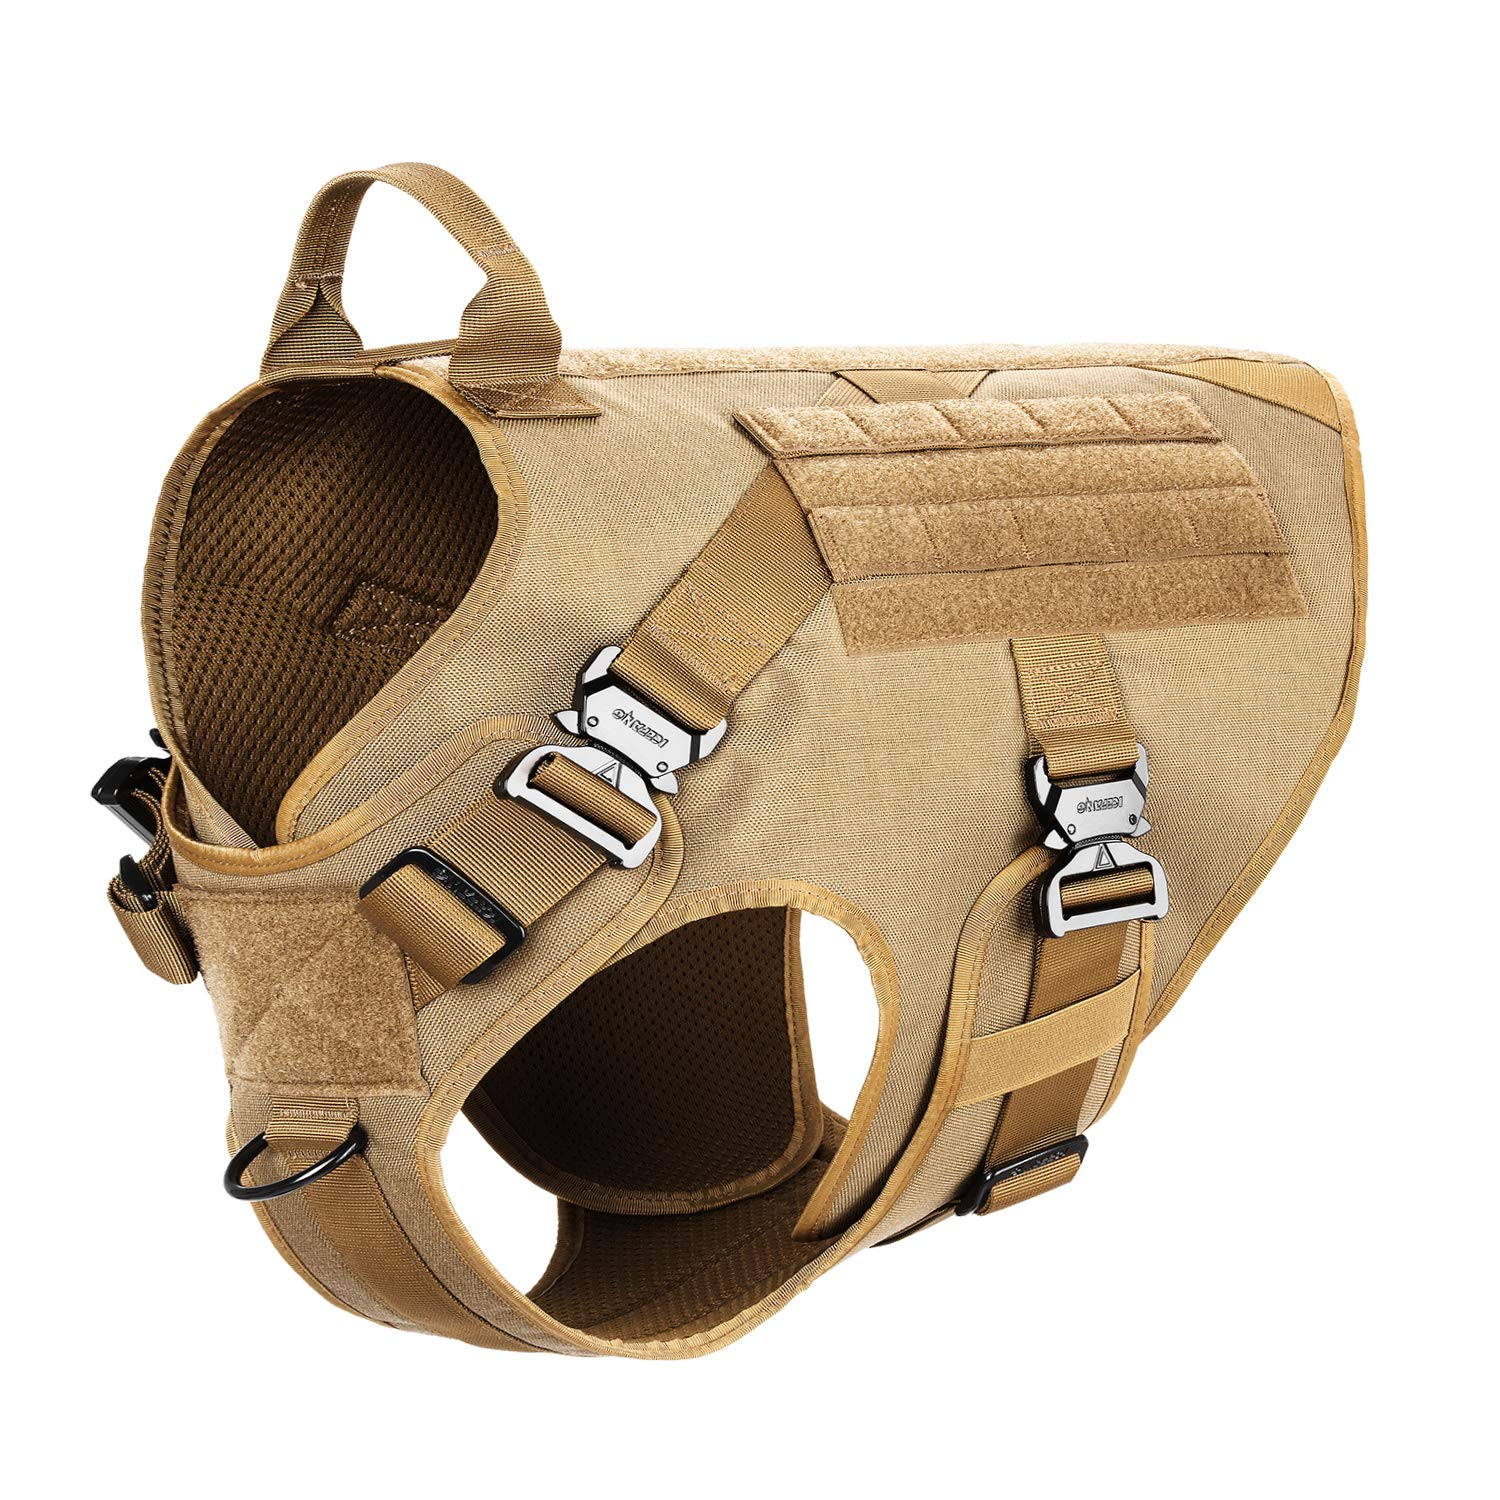 ICEFANG Tactical Dog Harness,K9 Working Dog Vest,No Pulling Front Clip Leash Attachment (XXL (36''-44'' Girth), Coyote Brown-4x Metal Buckle)